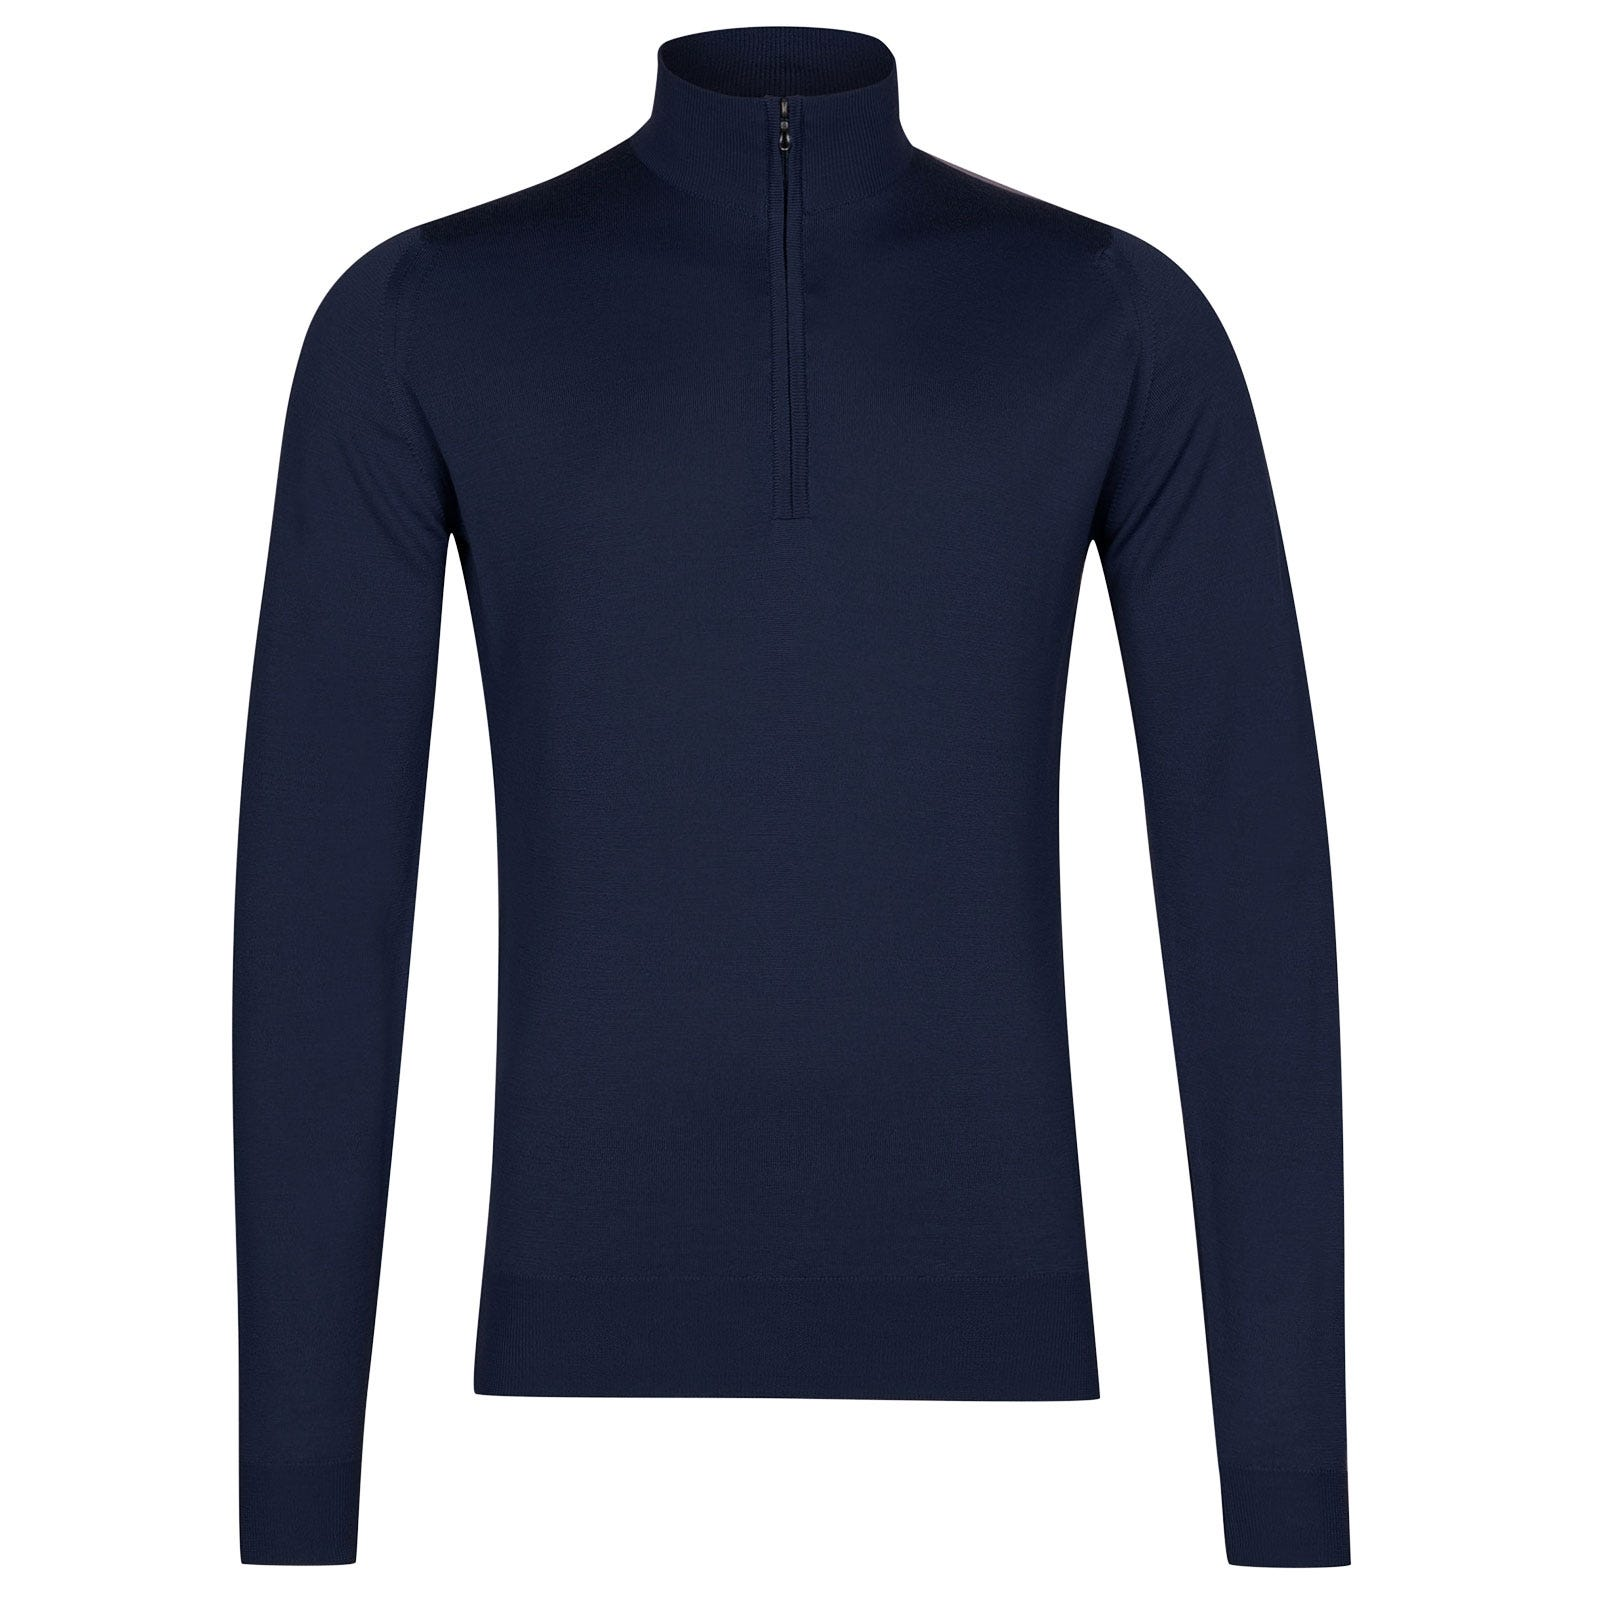 John Smedley Barrow Merino Wool Pullover in Magnetic Cobalt-XL